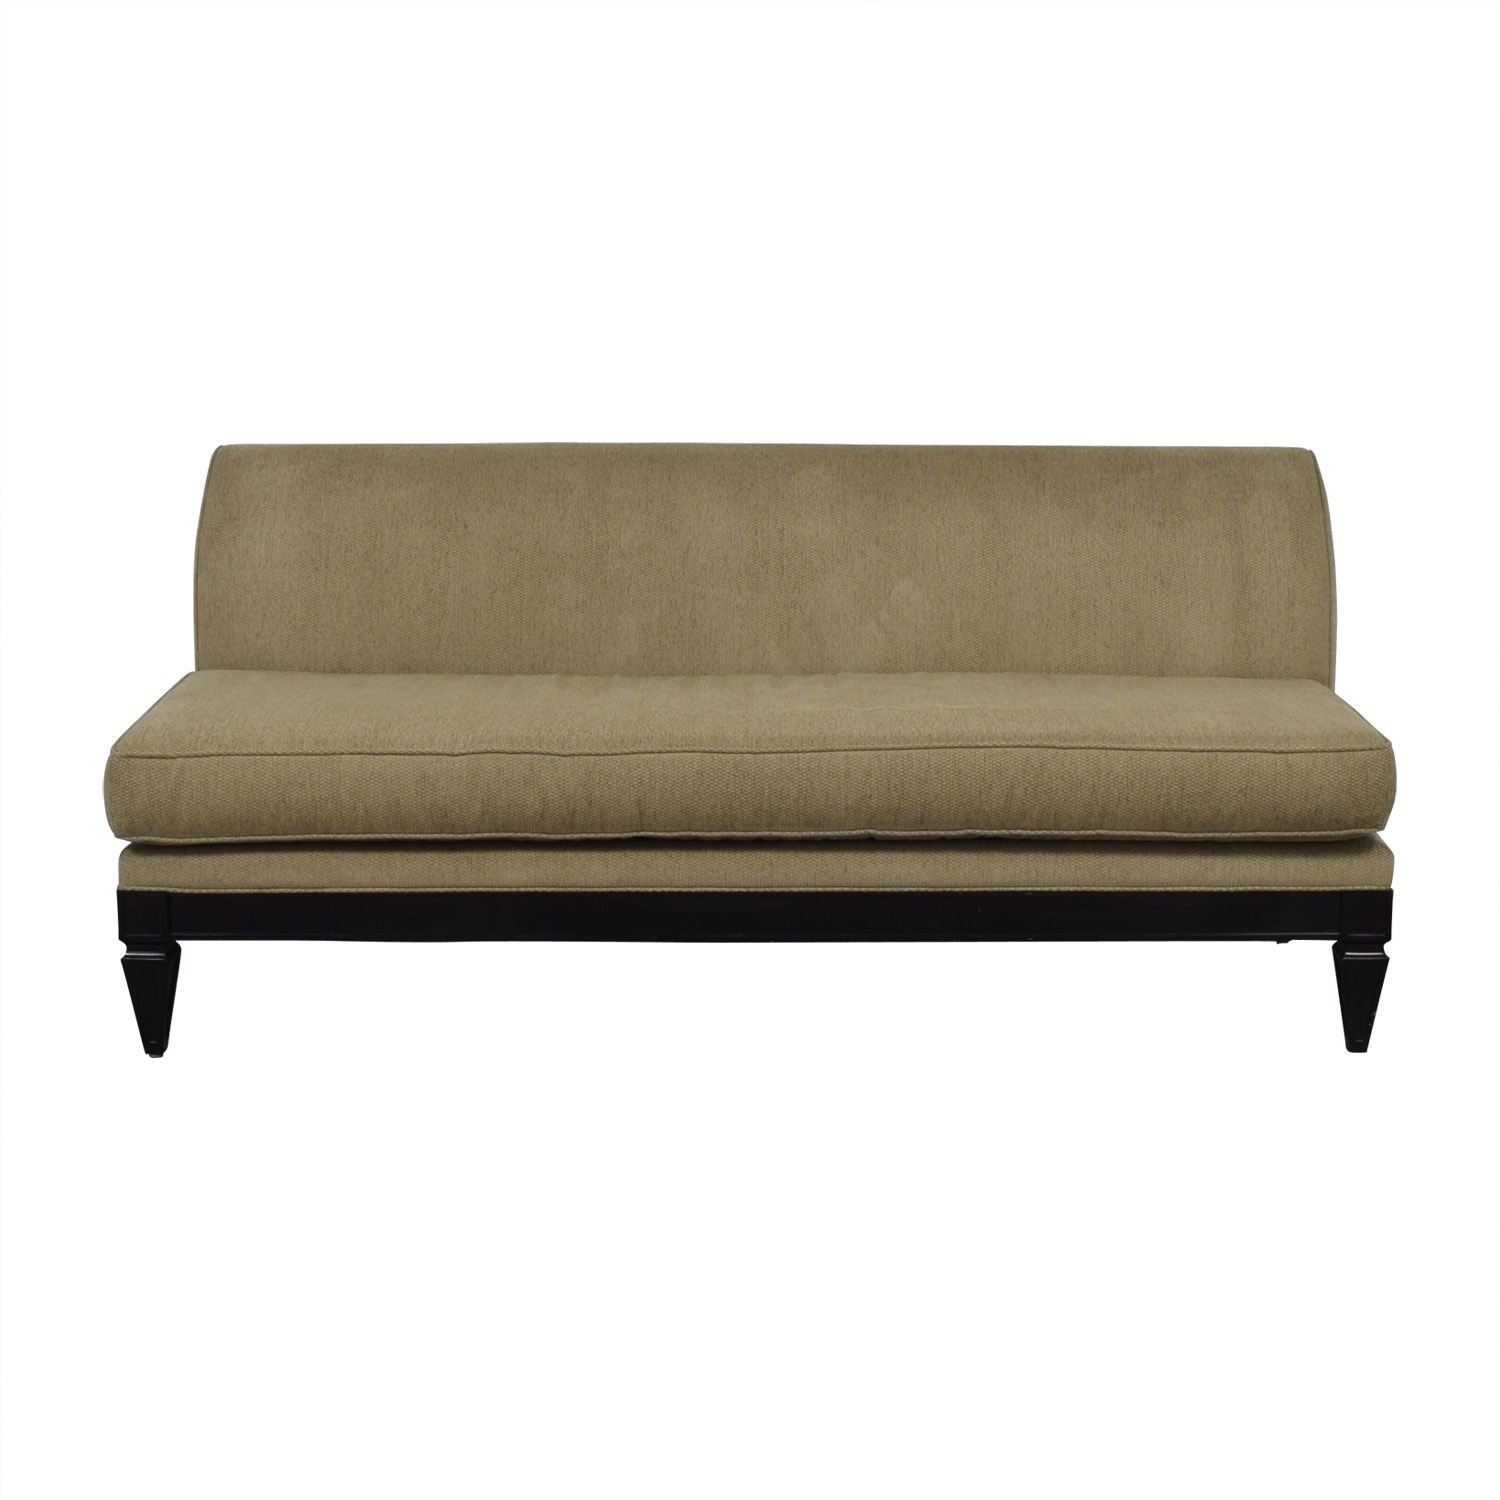 Todd Hase Todd Hase Tan Single Cushion Couch